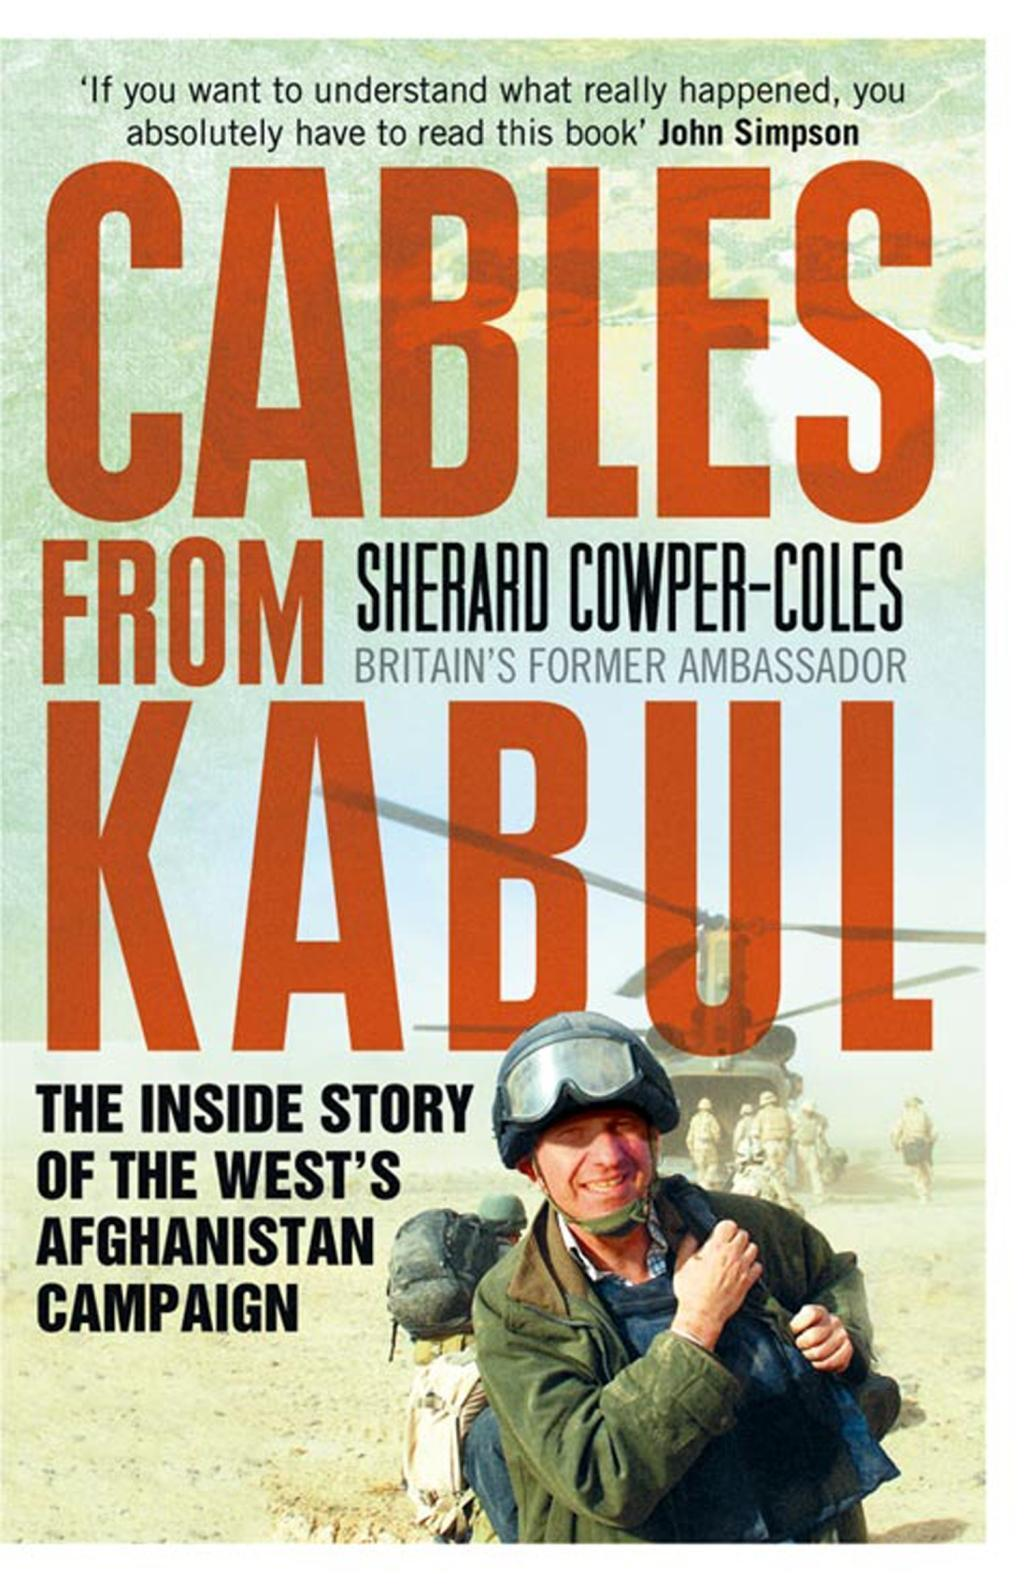 Cables from Kabul: The Inside Story of the West's Afghanistan Campaign